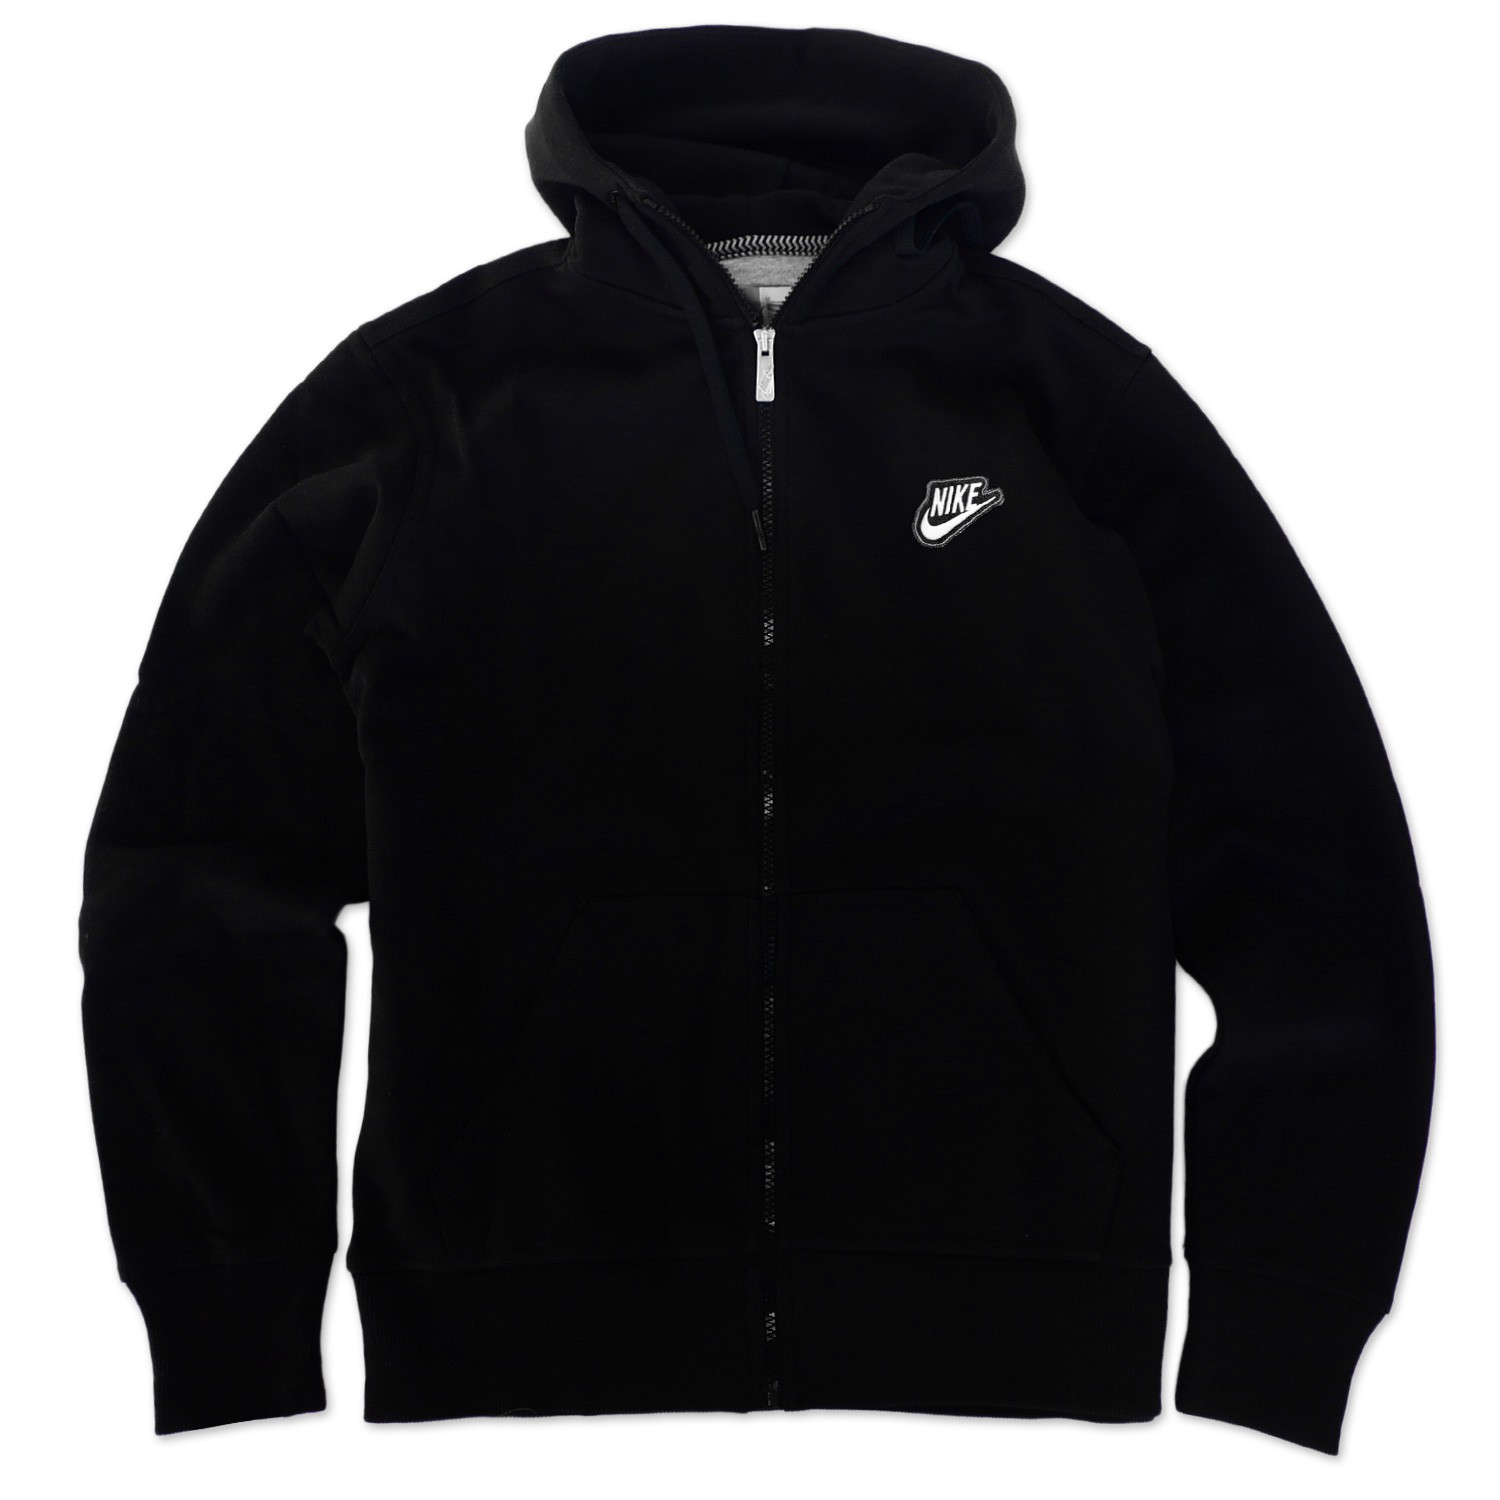 nike swoosh hoodie fleece hooded jacket hoody hoody. Black Bedroom Furniture Sets. Home Design Ideas